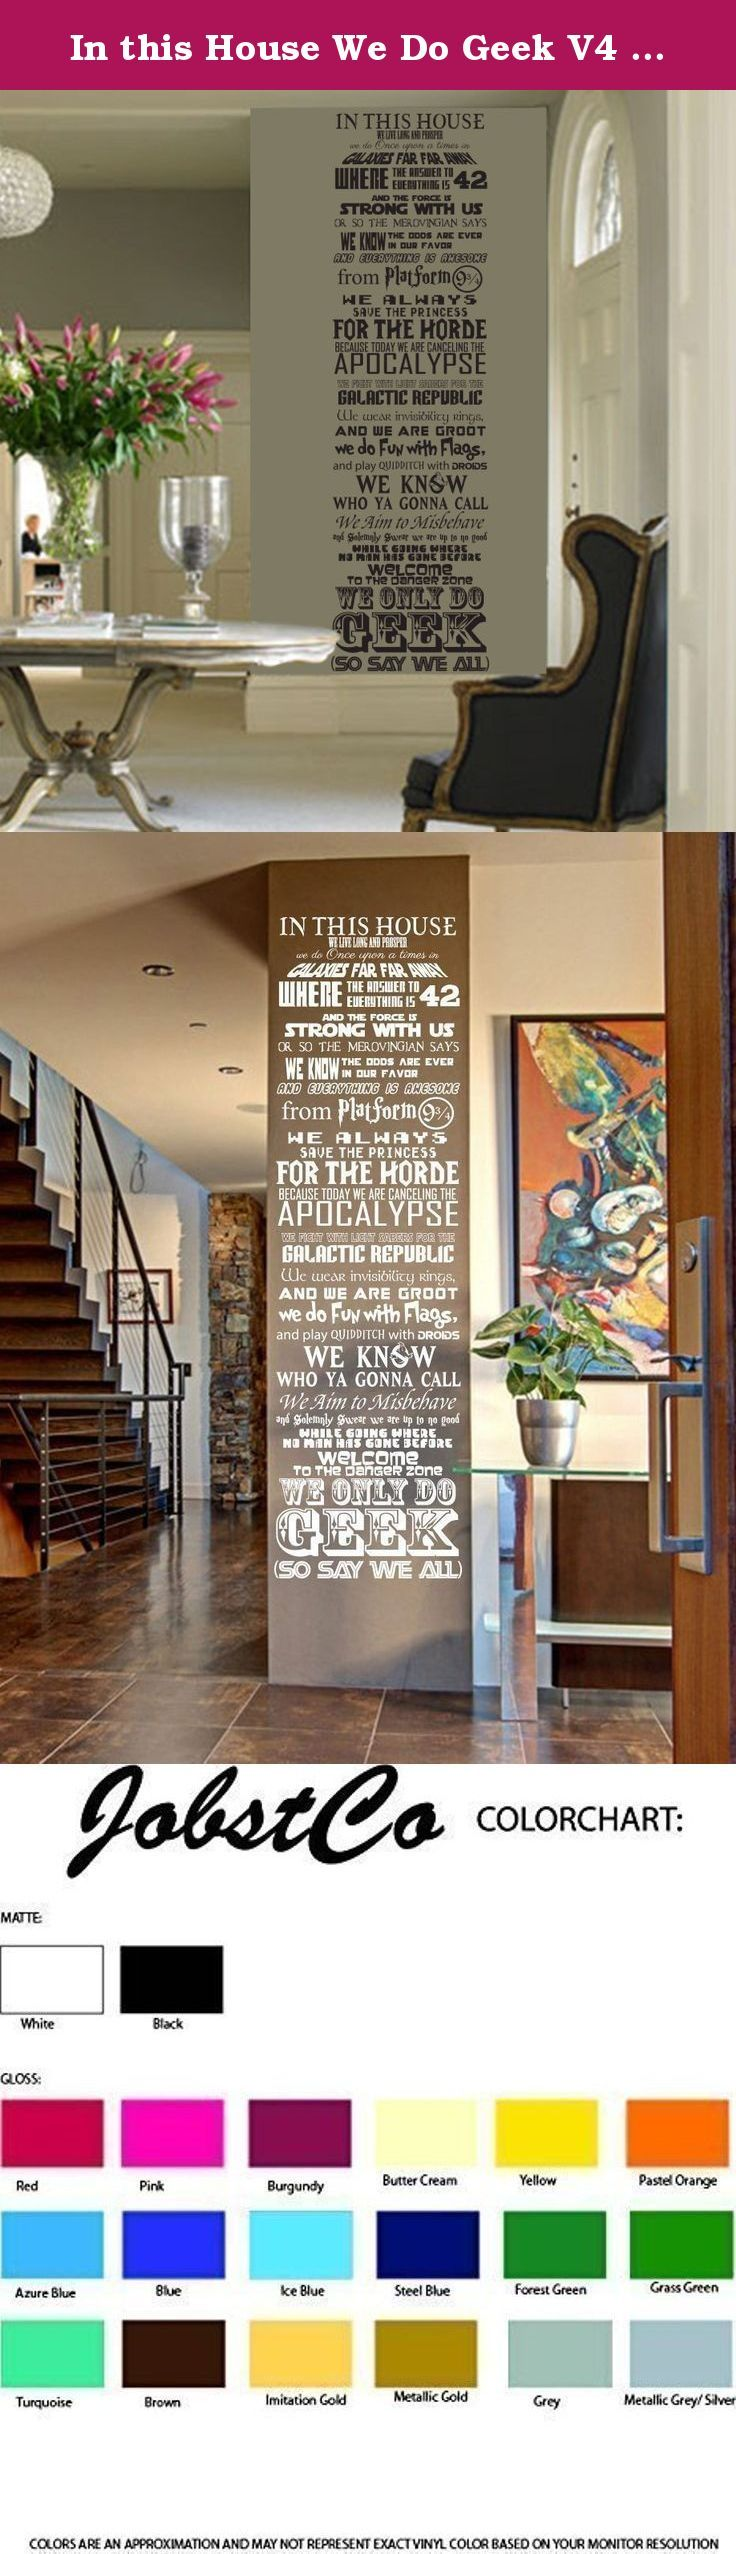 "In this House We Do Geek V4 vinyl wall decal inspired by various geekery fandom fantasy star wars galactica firefly harry potter hobbit. ***This wall decal comes in multiple sizes, select the size you desire*** This is our original poem mash up. Show you are a fan of all things GEEK with our original geekery inspired wall decal. Put it on your wall as a welcome and note that ""We Do Geek"". This poem if you will we designed to try and fit in as many items as we could. It includes items from..."